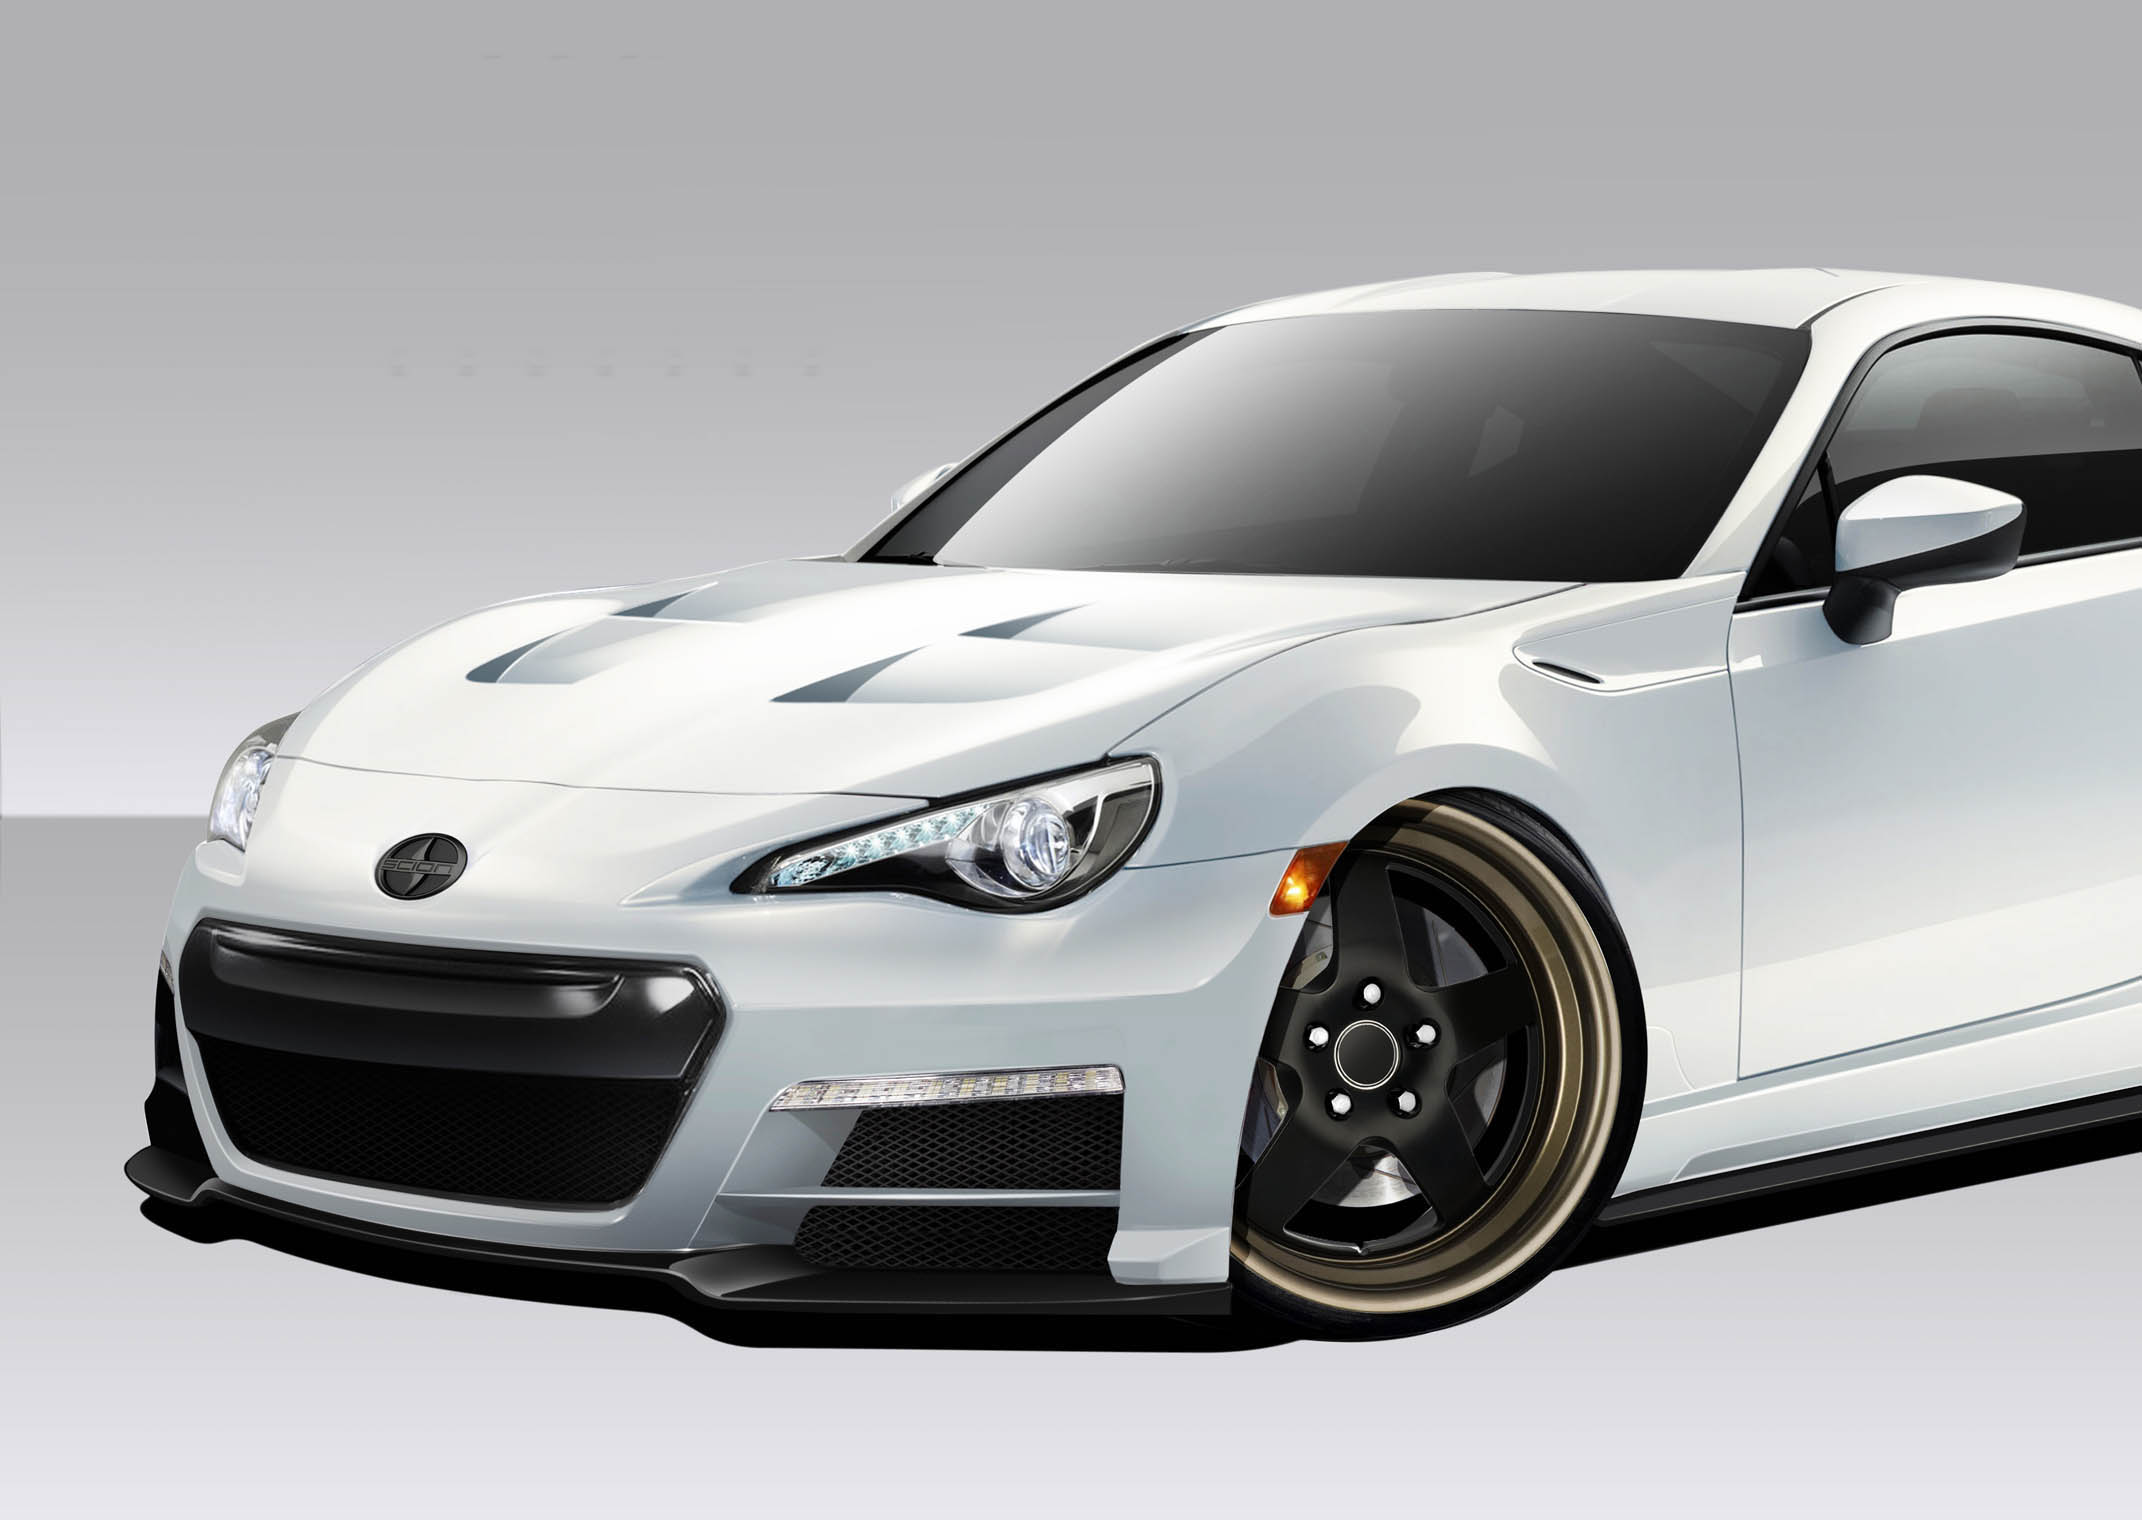 2013 2016 fits scion fr s fits subaru brz 86 r body kit. Black Bedroom Furniture Sets. Home Design Ideas